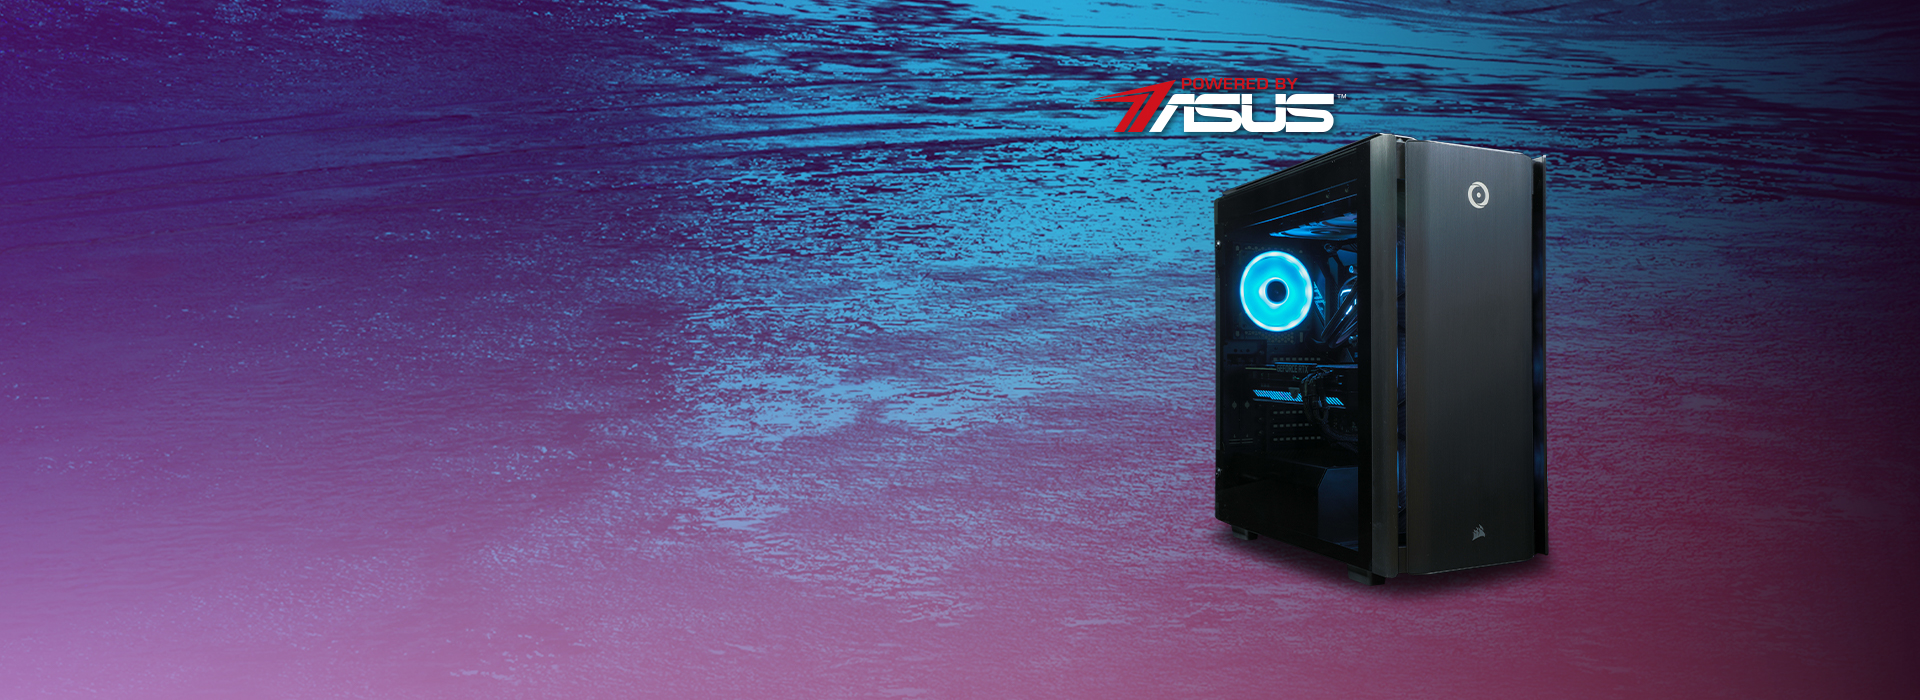 ASUS Holiday Giveaway